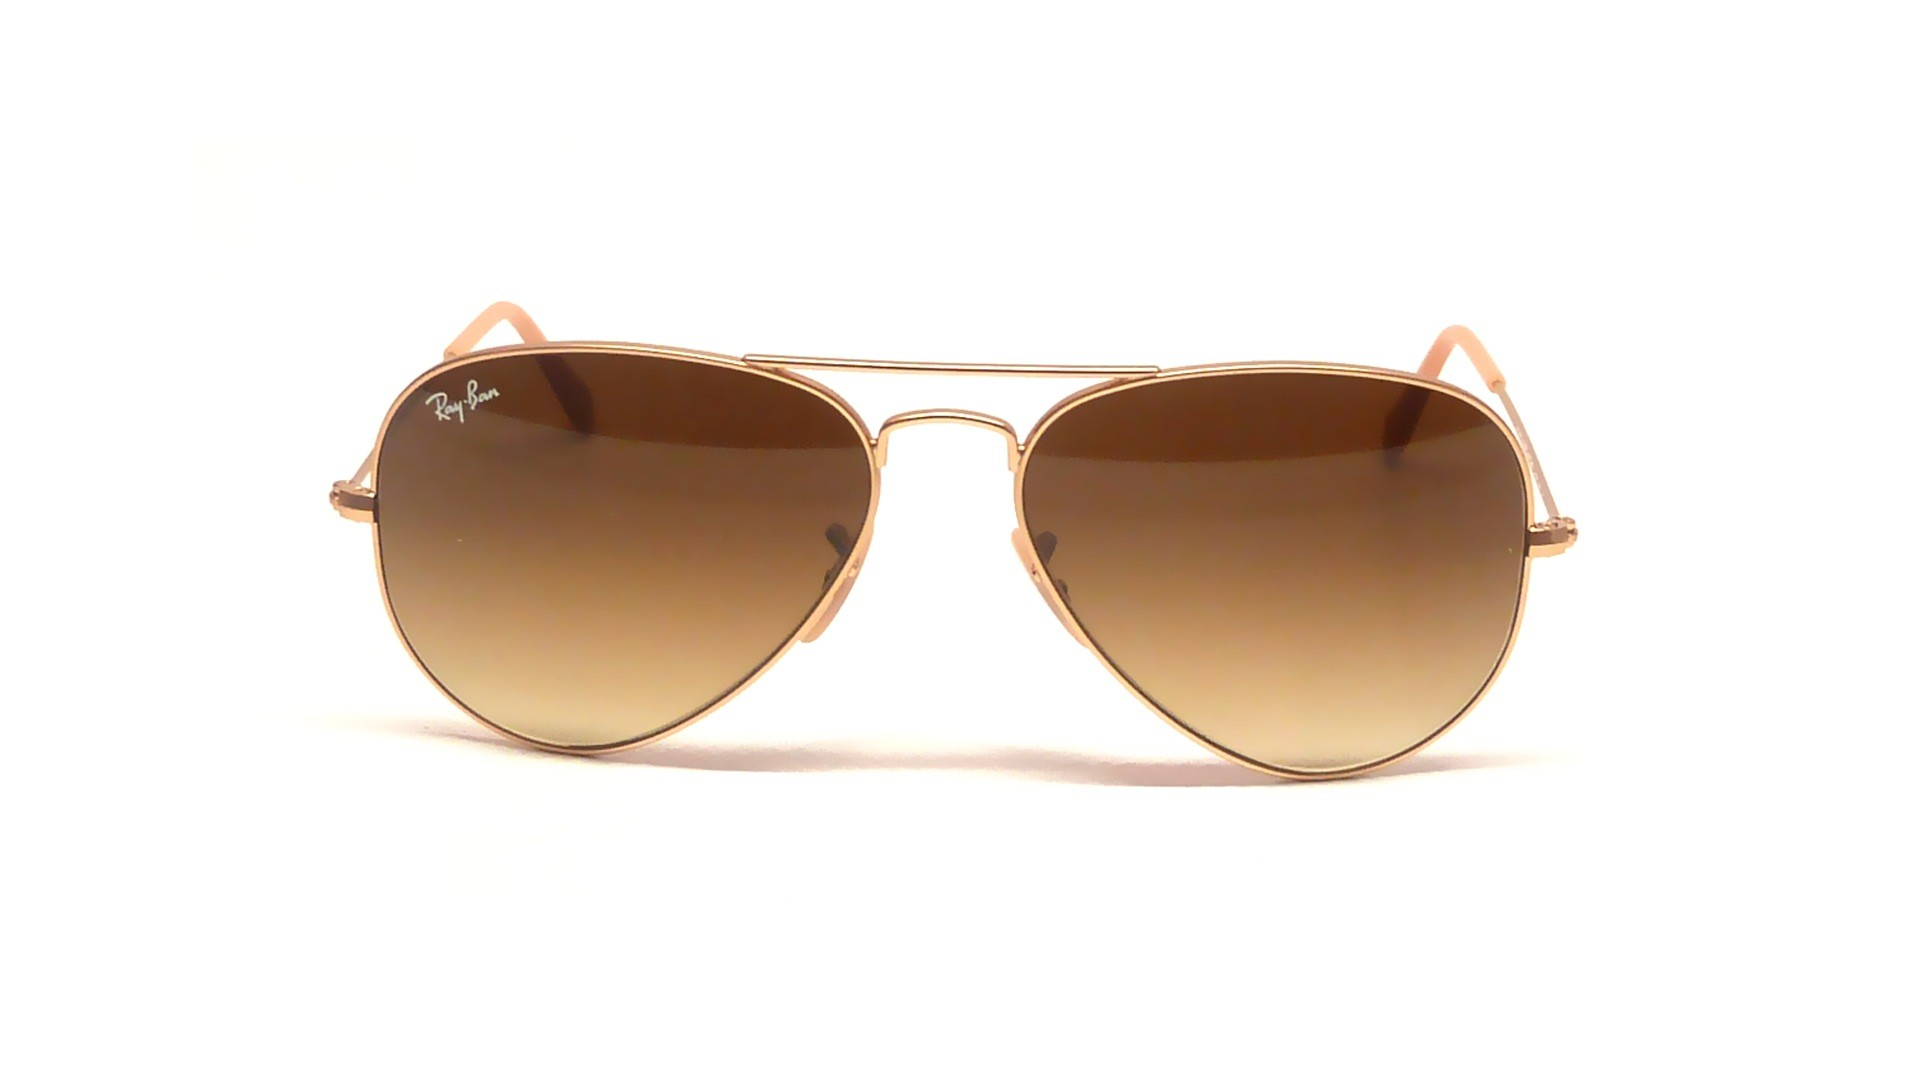 Ray-Ban RB3025 112/85 55 mm/14 mm VSVsv